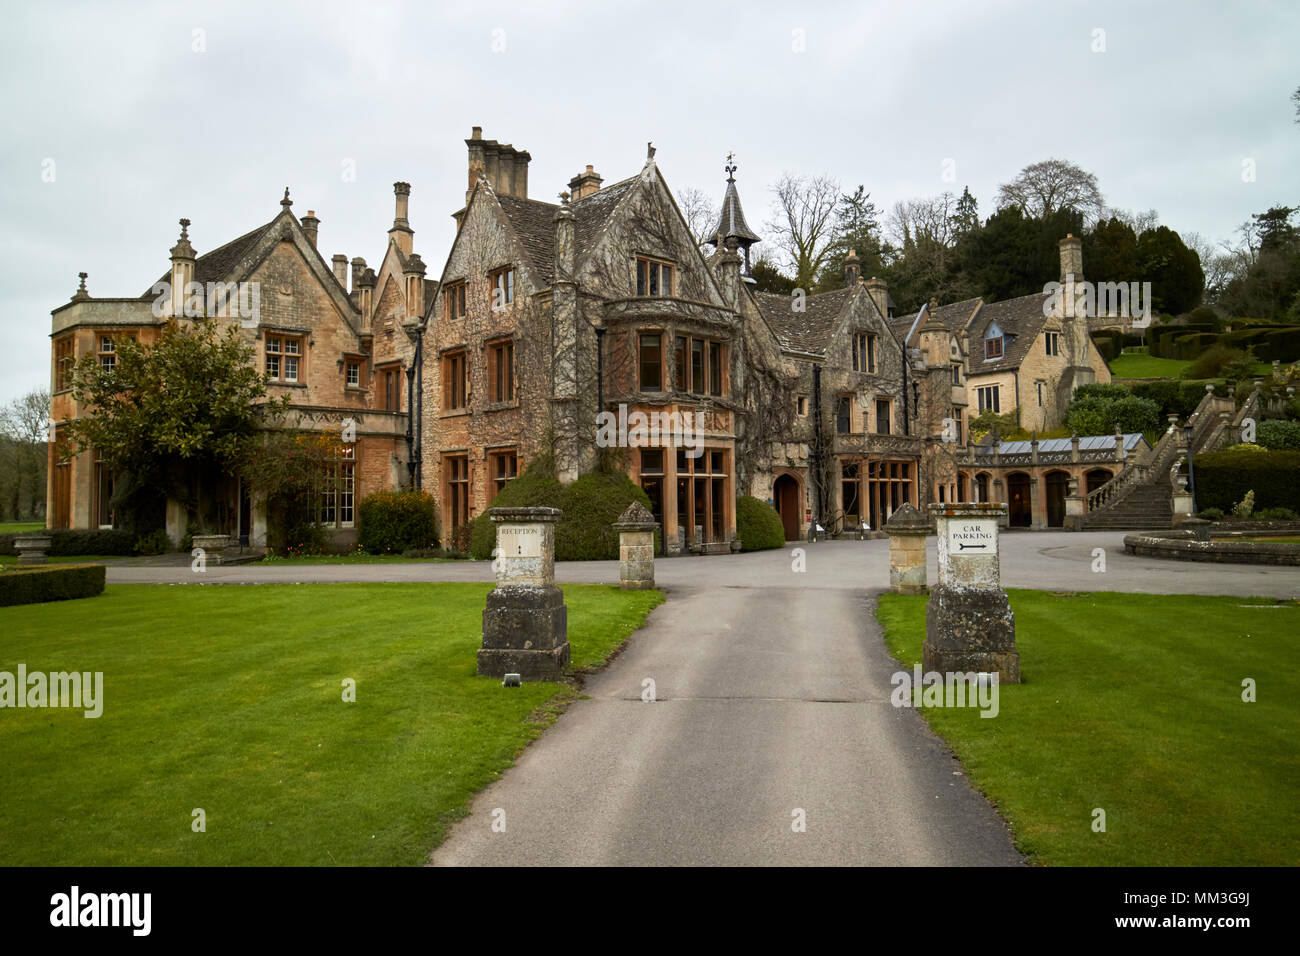 The Manor House Hotel 14th century country house hotel Castle Combe village wiltshire england uk - Stock Image